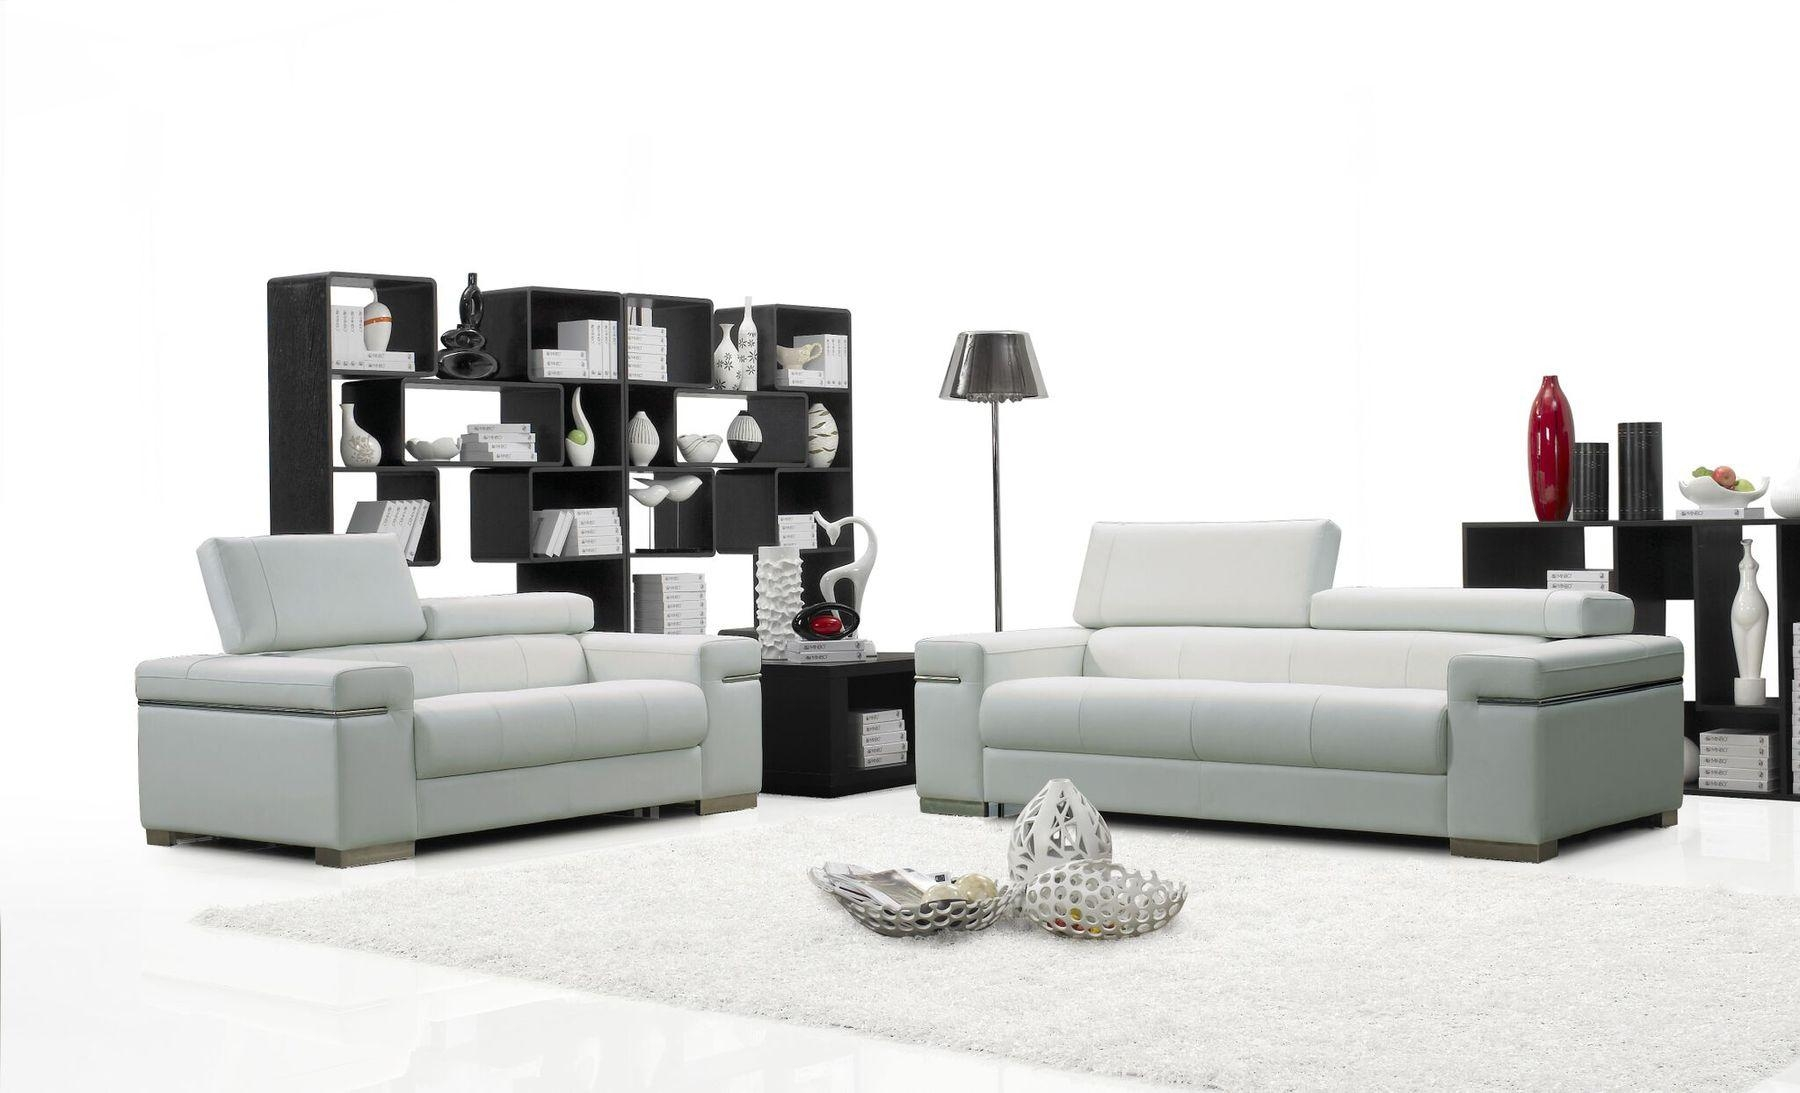 Soho White Sofa Jm Soho J&m Leather Sofas At Comfyco Furniture Pertaining To Italian Leather Sofas (Image 16 of 20)